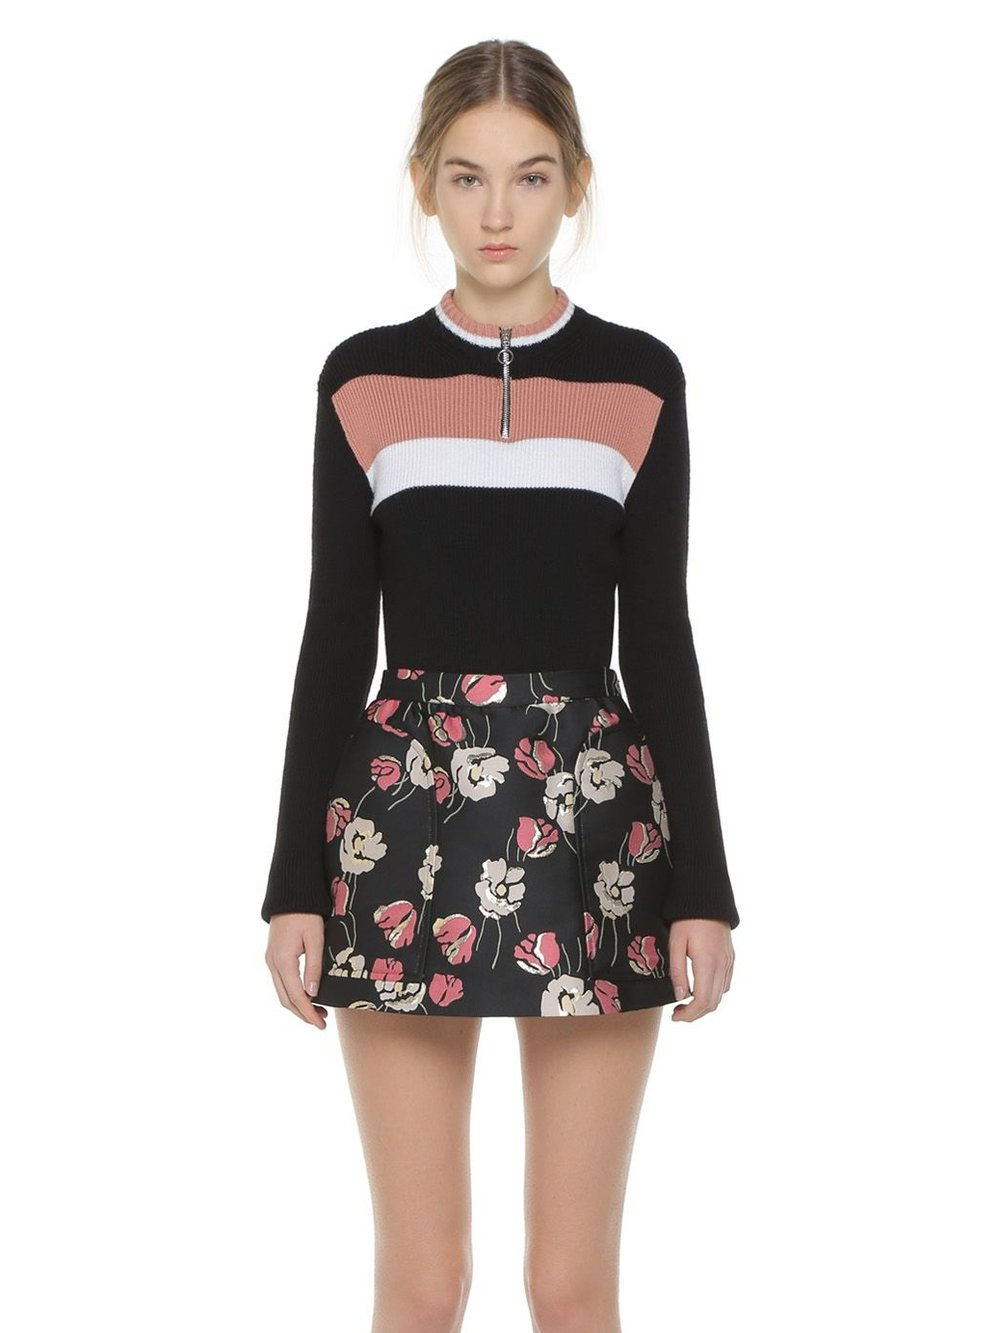 Red Valentino - Poppy Flower Lurex Jacquard SkortDetailed with a lightly gathered frontal panel recalling the shape of a skirt.